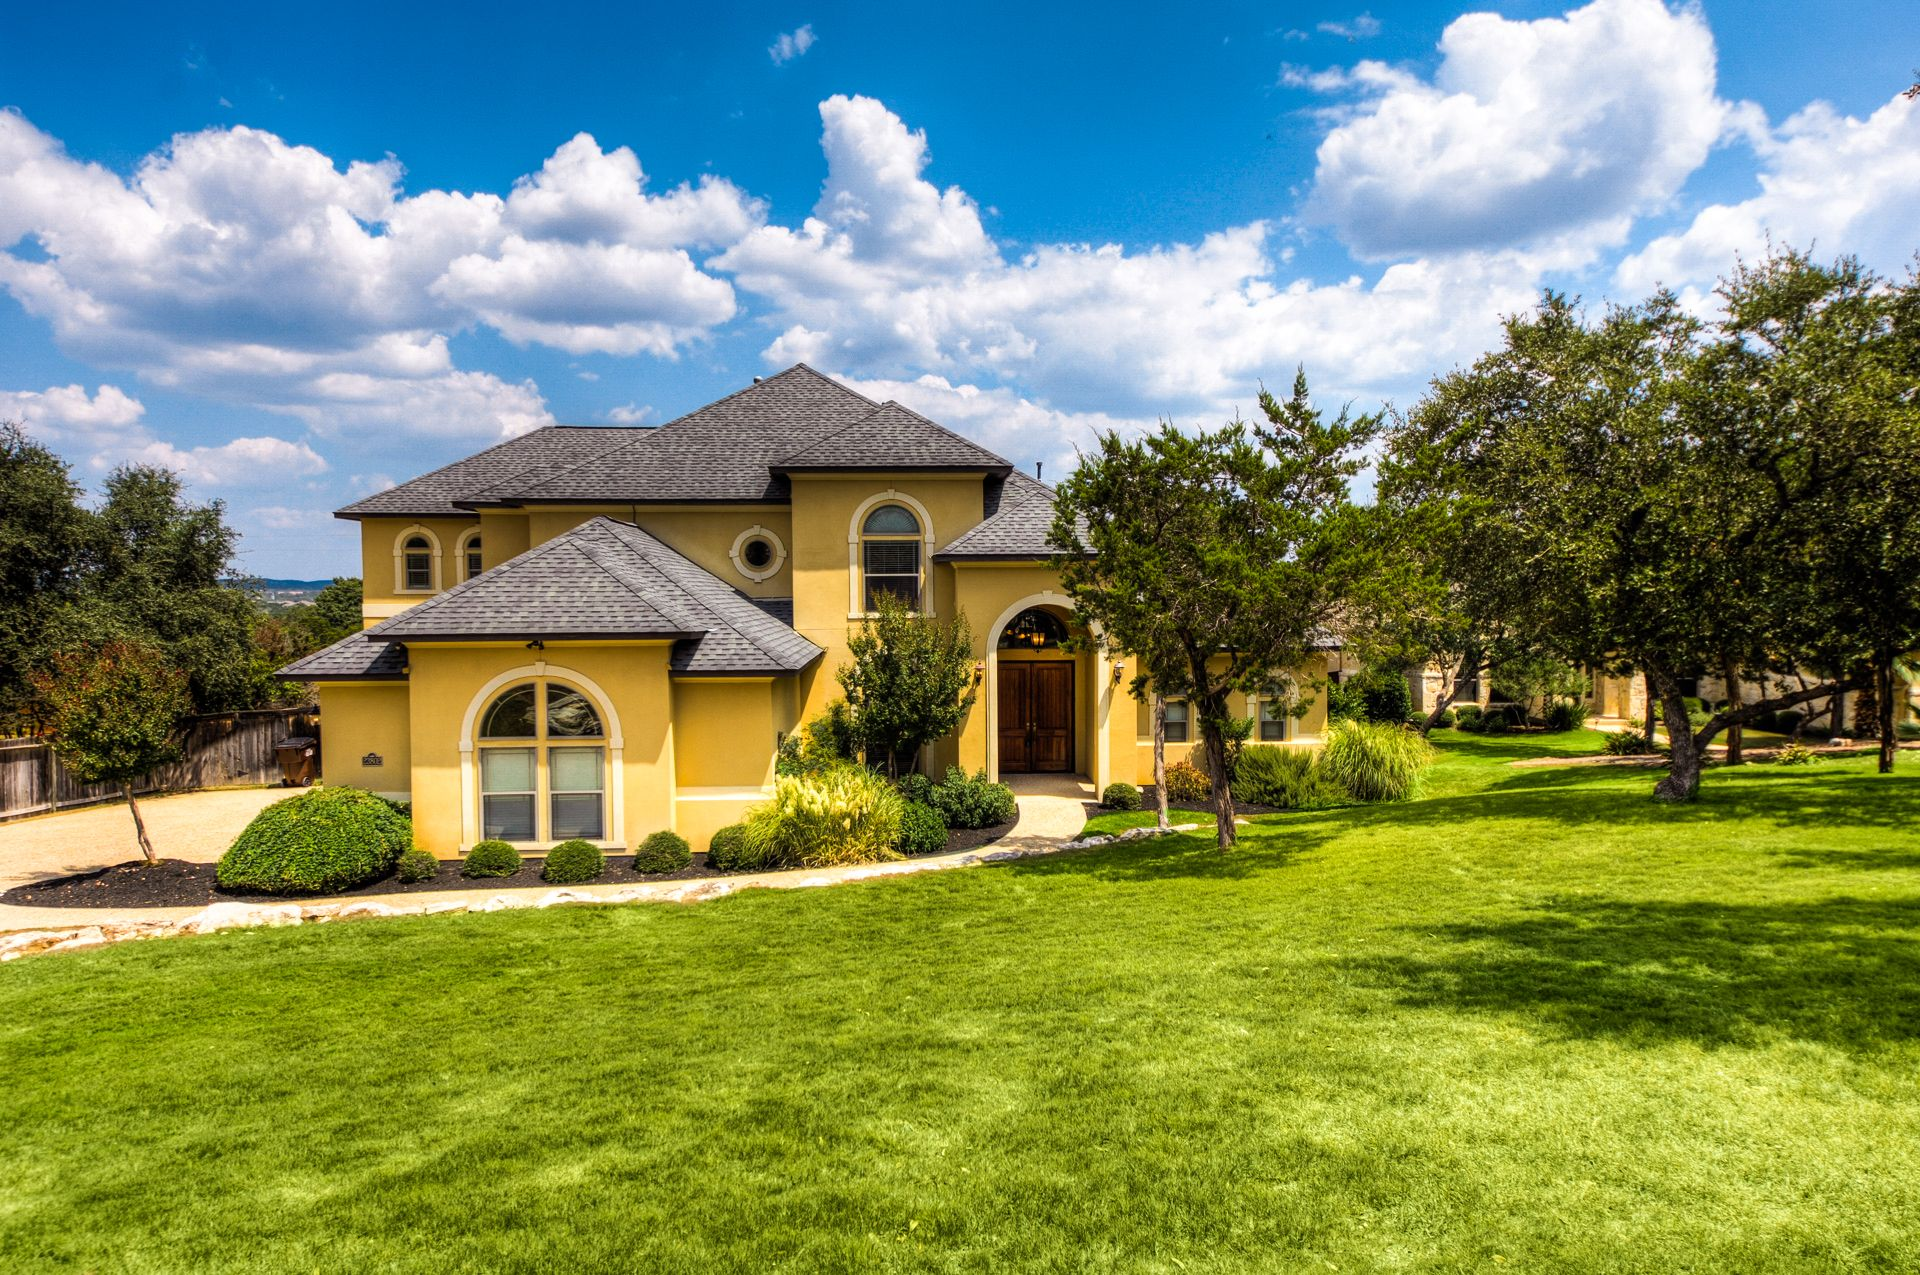 Boerne Texas Abandoned Mansions For Sale